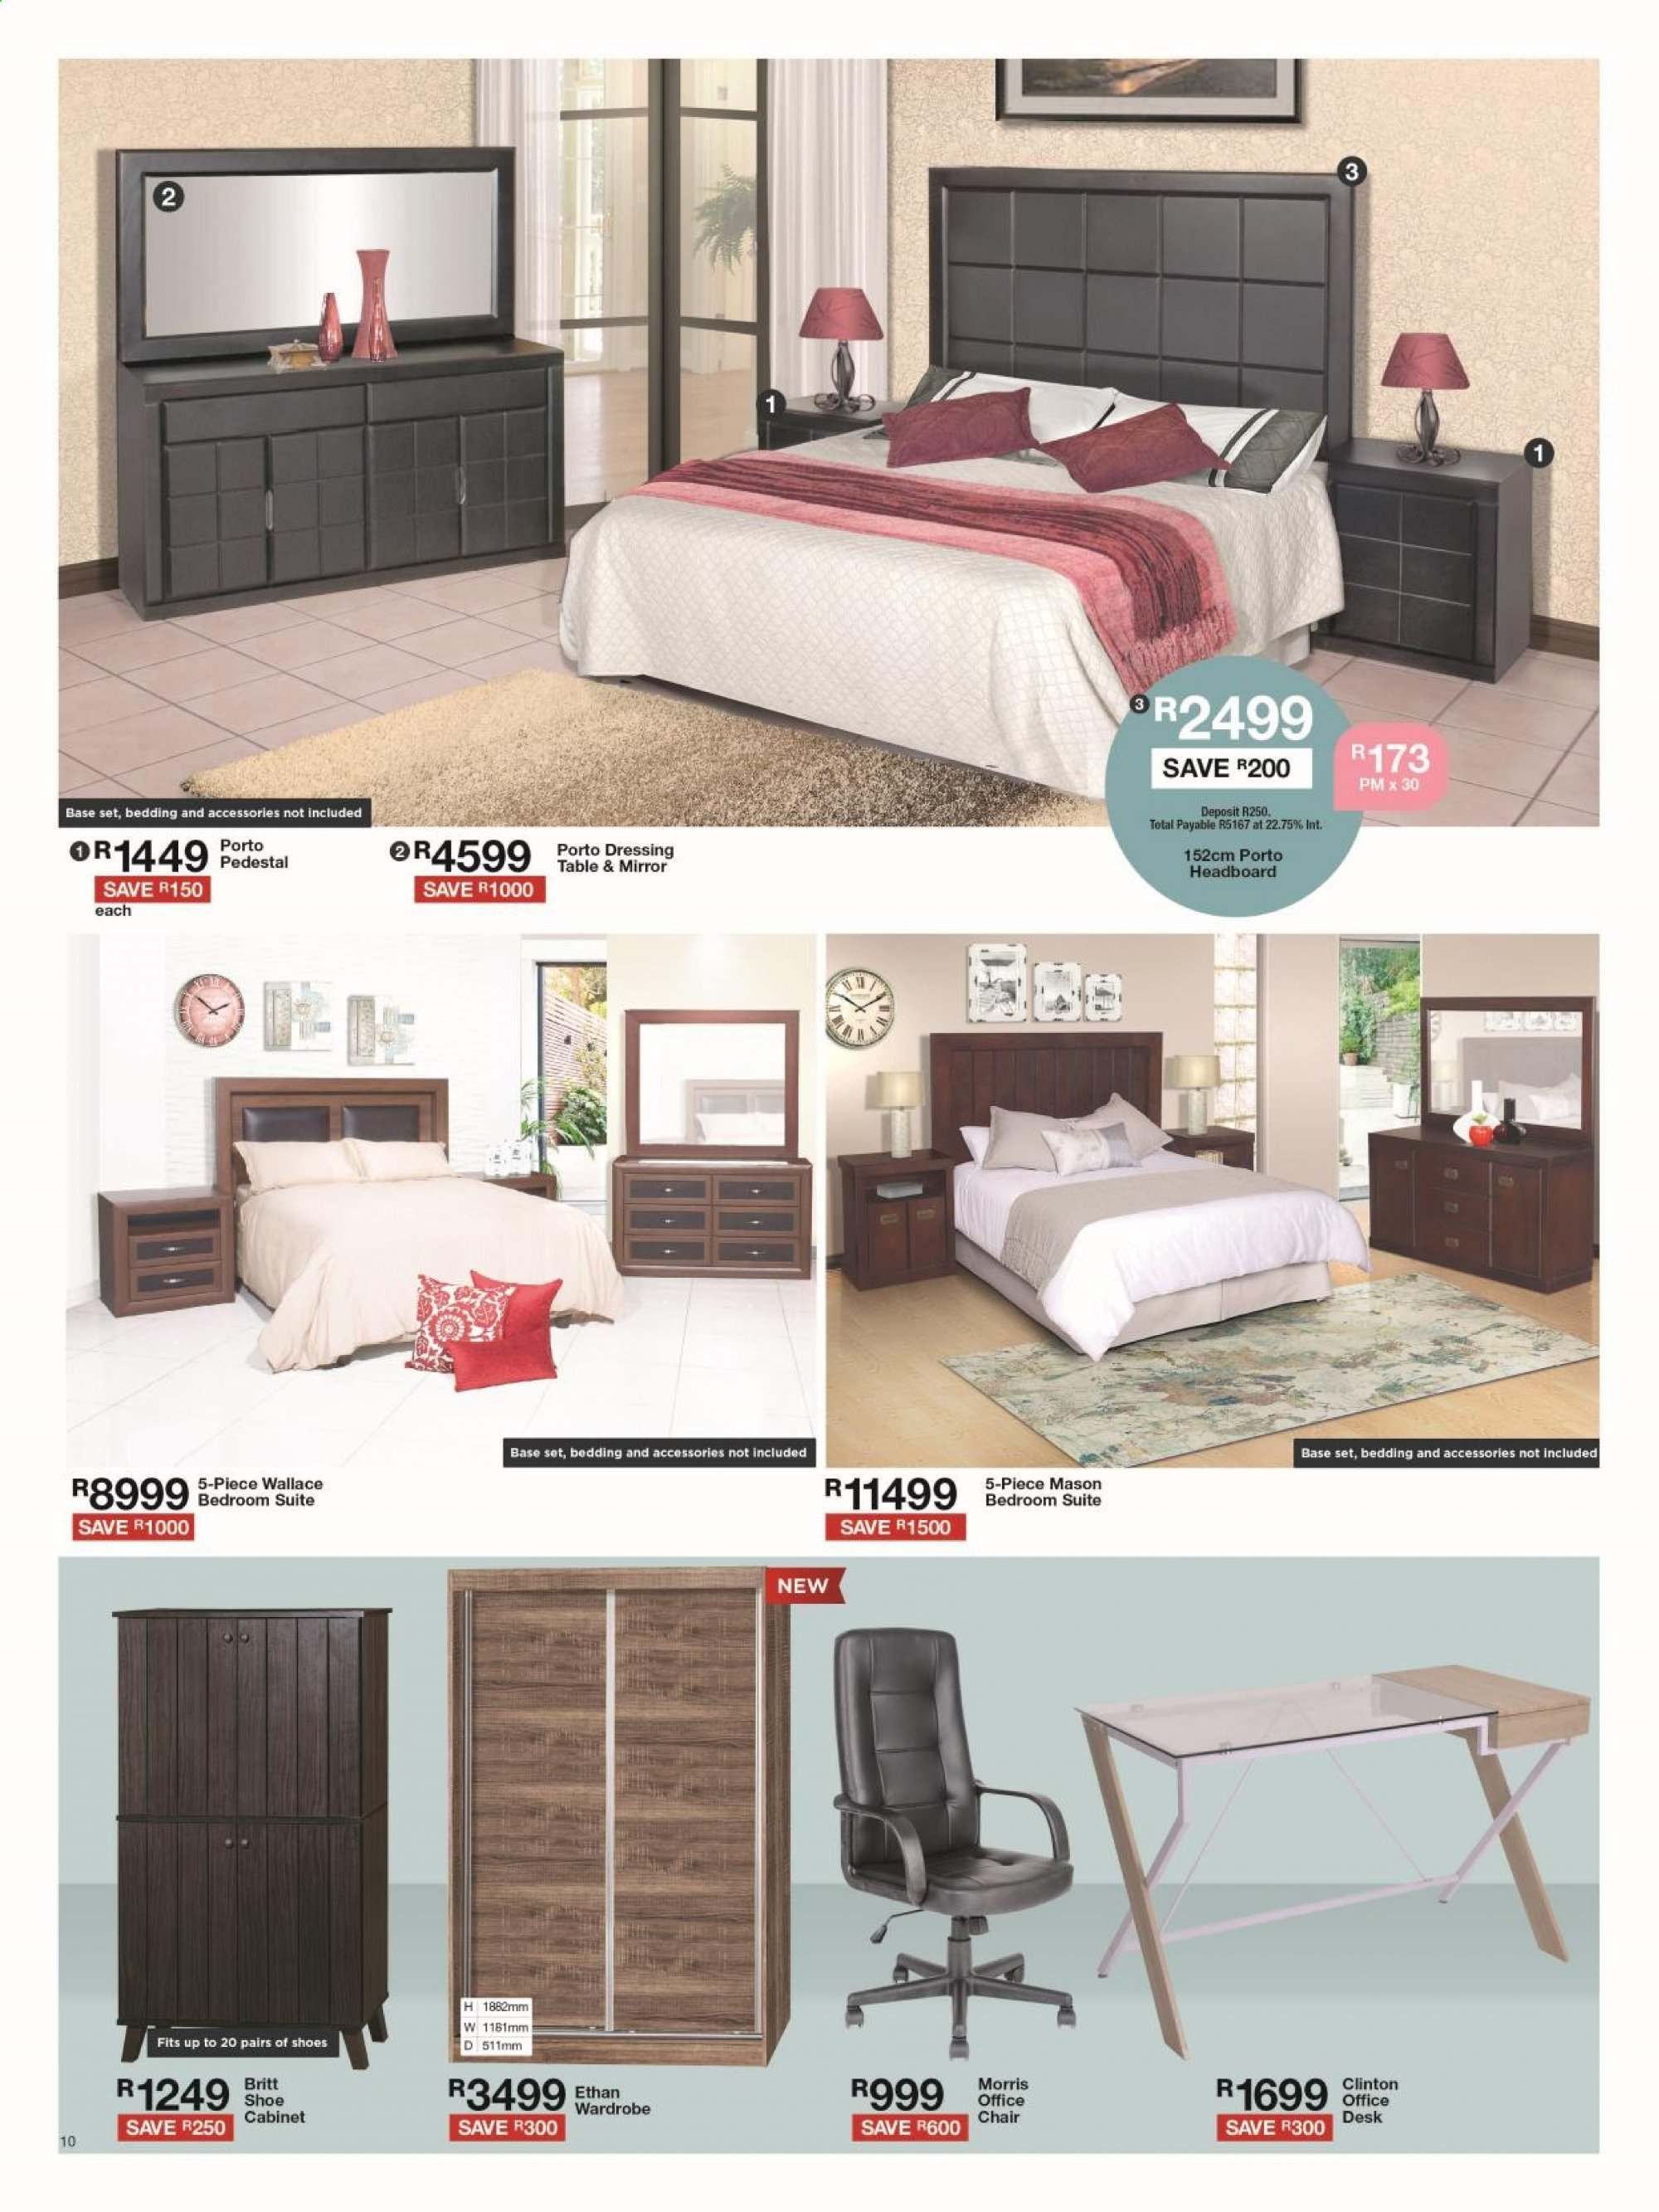 House & Home catalogue  - 07.23.2019 - 08.04.2019. Page 10.